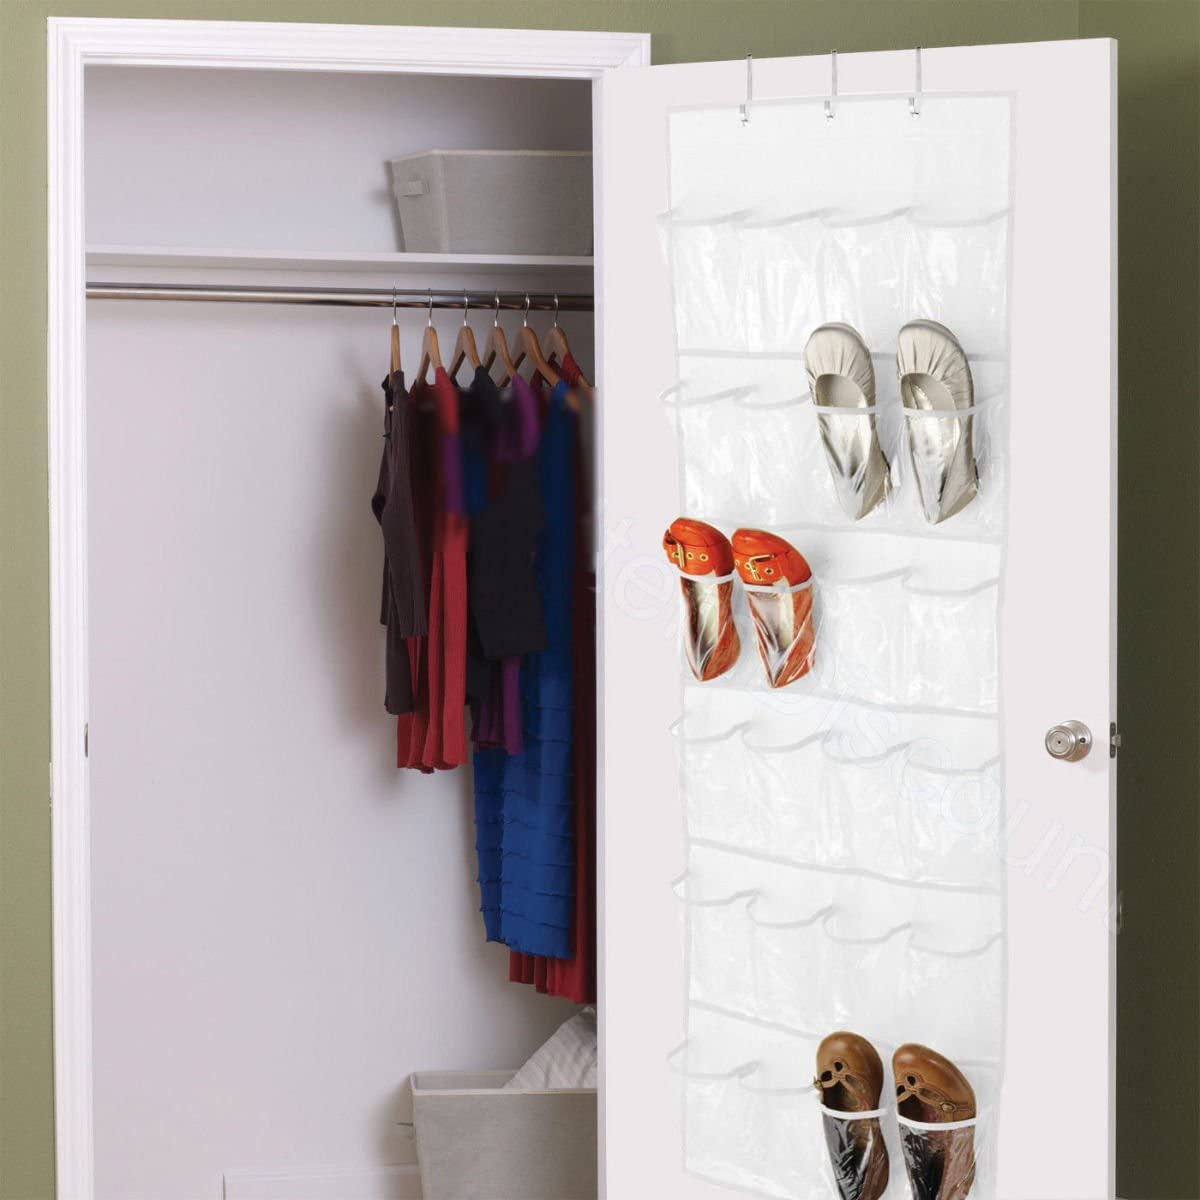 Beige Easyinsmile Clear Over The Door Shoe Hanging Organizer with 24 Clear Pockets Organizer,Hanging Shoes Oragnizer.